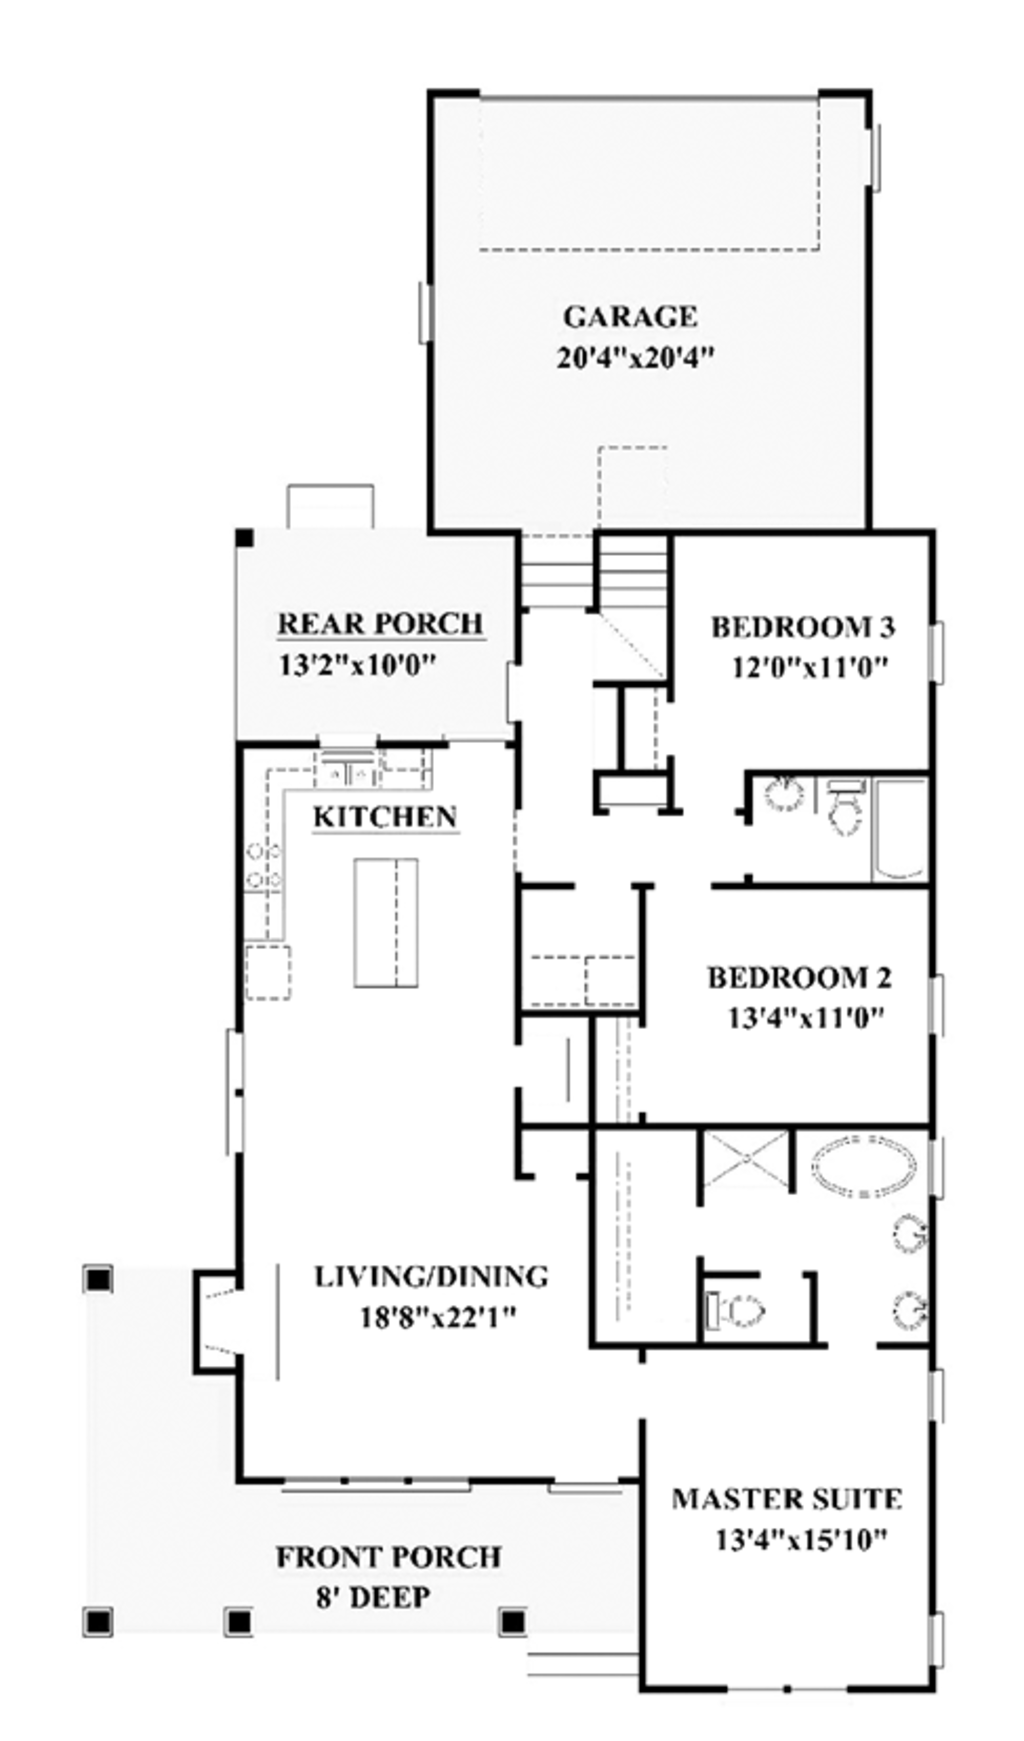 house plans rear garage additional html with Hwepl77195 on 2191 Sq Ft Home 1 Story 4 Bedroom 2 Bath House Plans Plan11 154 furthermore Ranch Style House Plans 3231 Square Foot Home 1 Story 4 Bedroom And 3 Bath 3 Garage Stalls By Monster House Plans Plan18 481 likewise Hwepl67179 moreover Hwepl11559 additionally 2405 Sq Ft Home 1 Story 3 Bedroom 2 Bath House Plans Plan18 425.